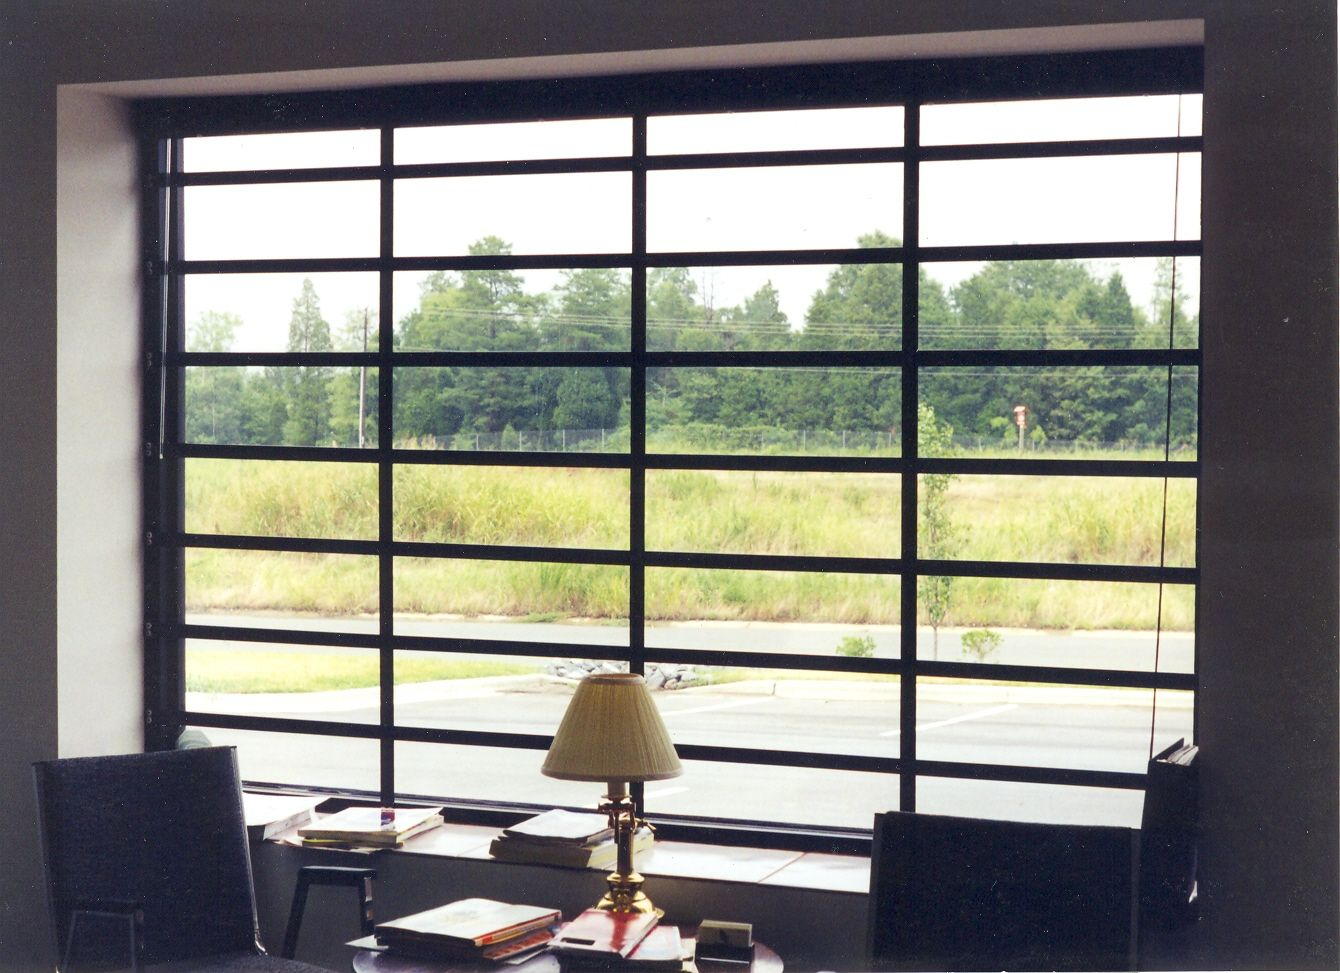 Iron window bars for the home pinterest window bars for Modern zen window grills design